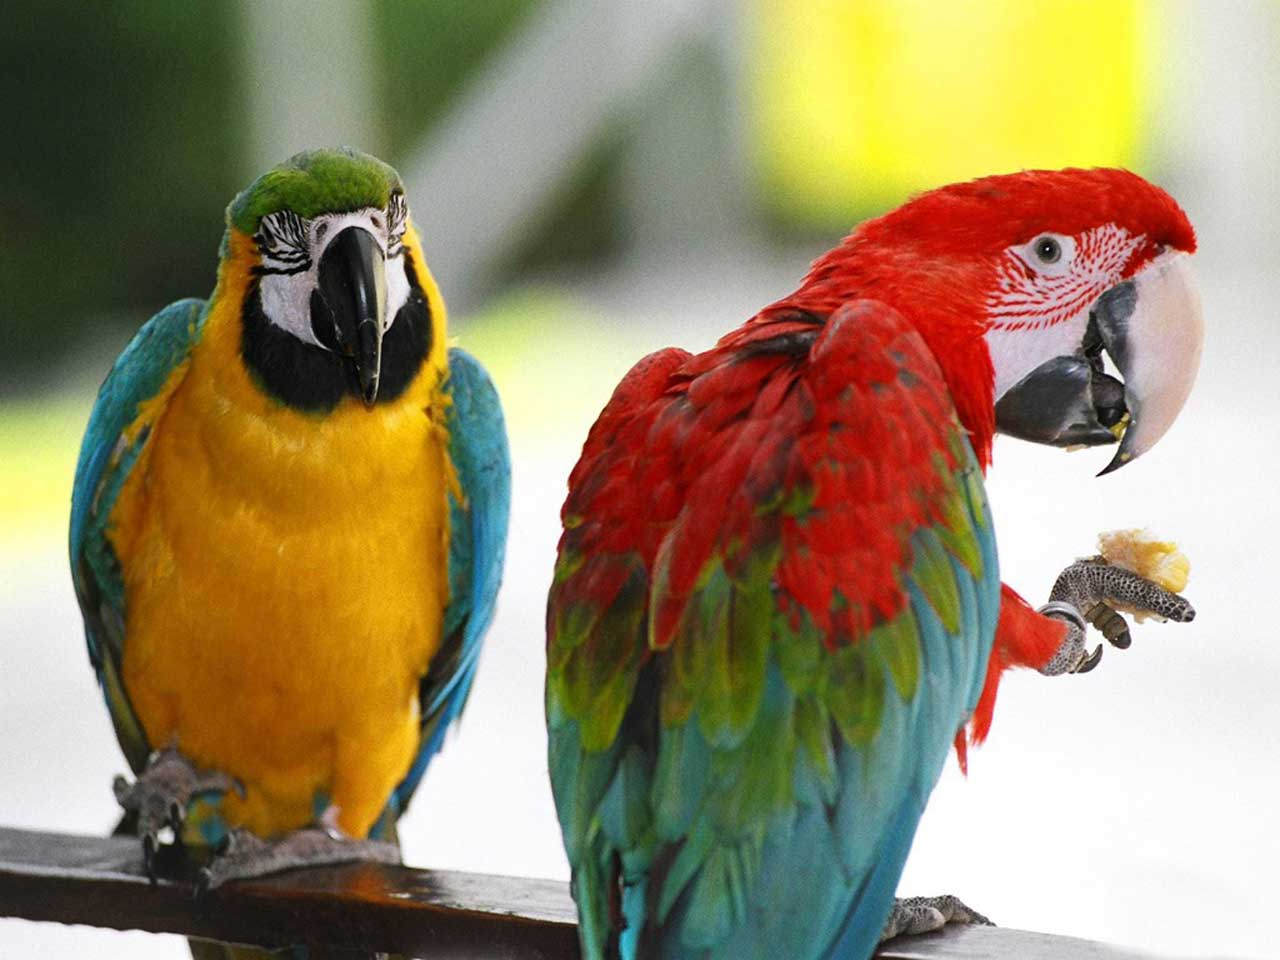 Amazing Parrots Wallpapers  Android Apps on Google Play 1280x960